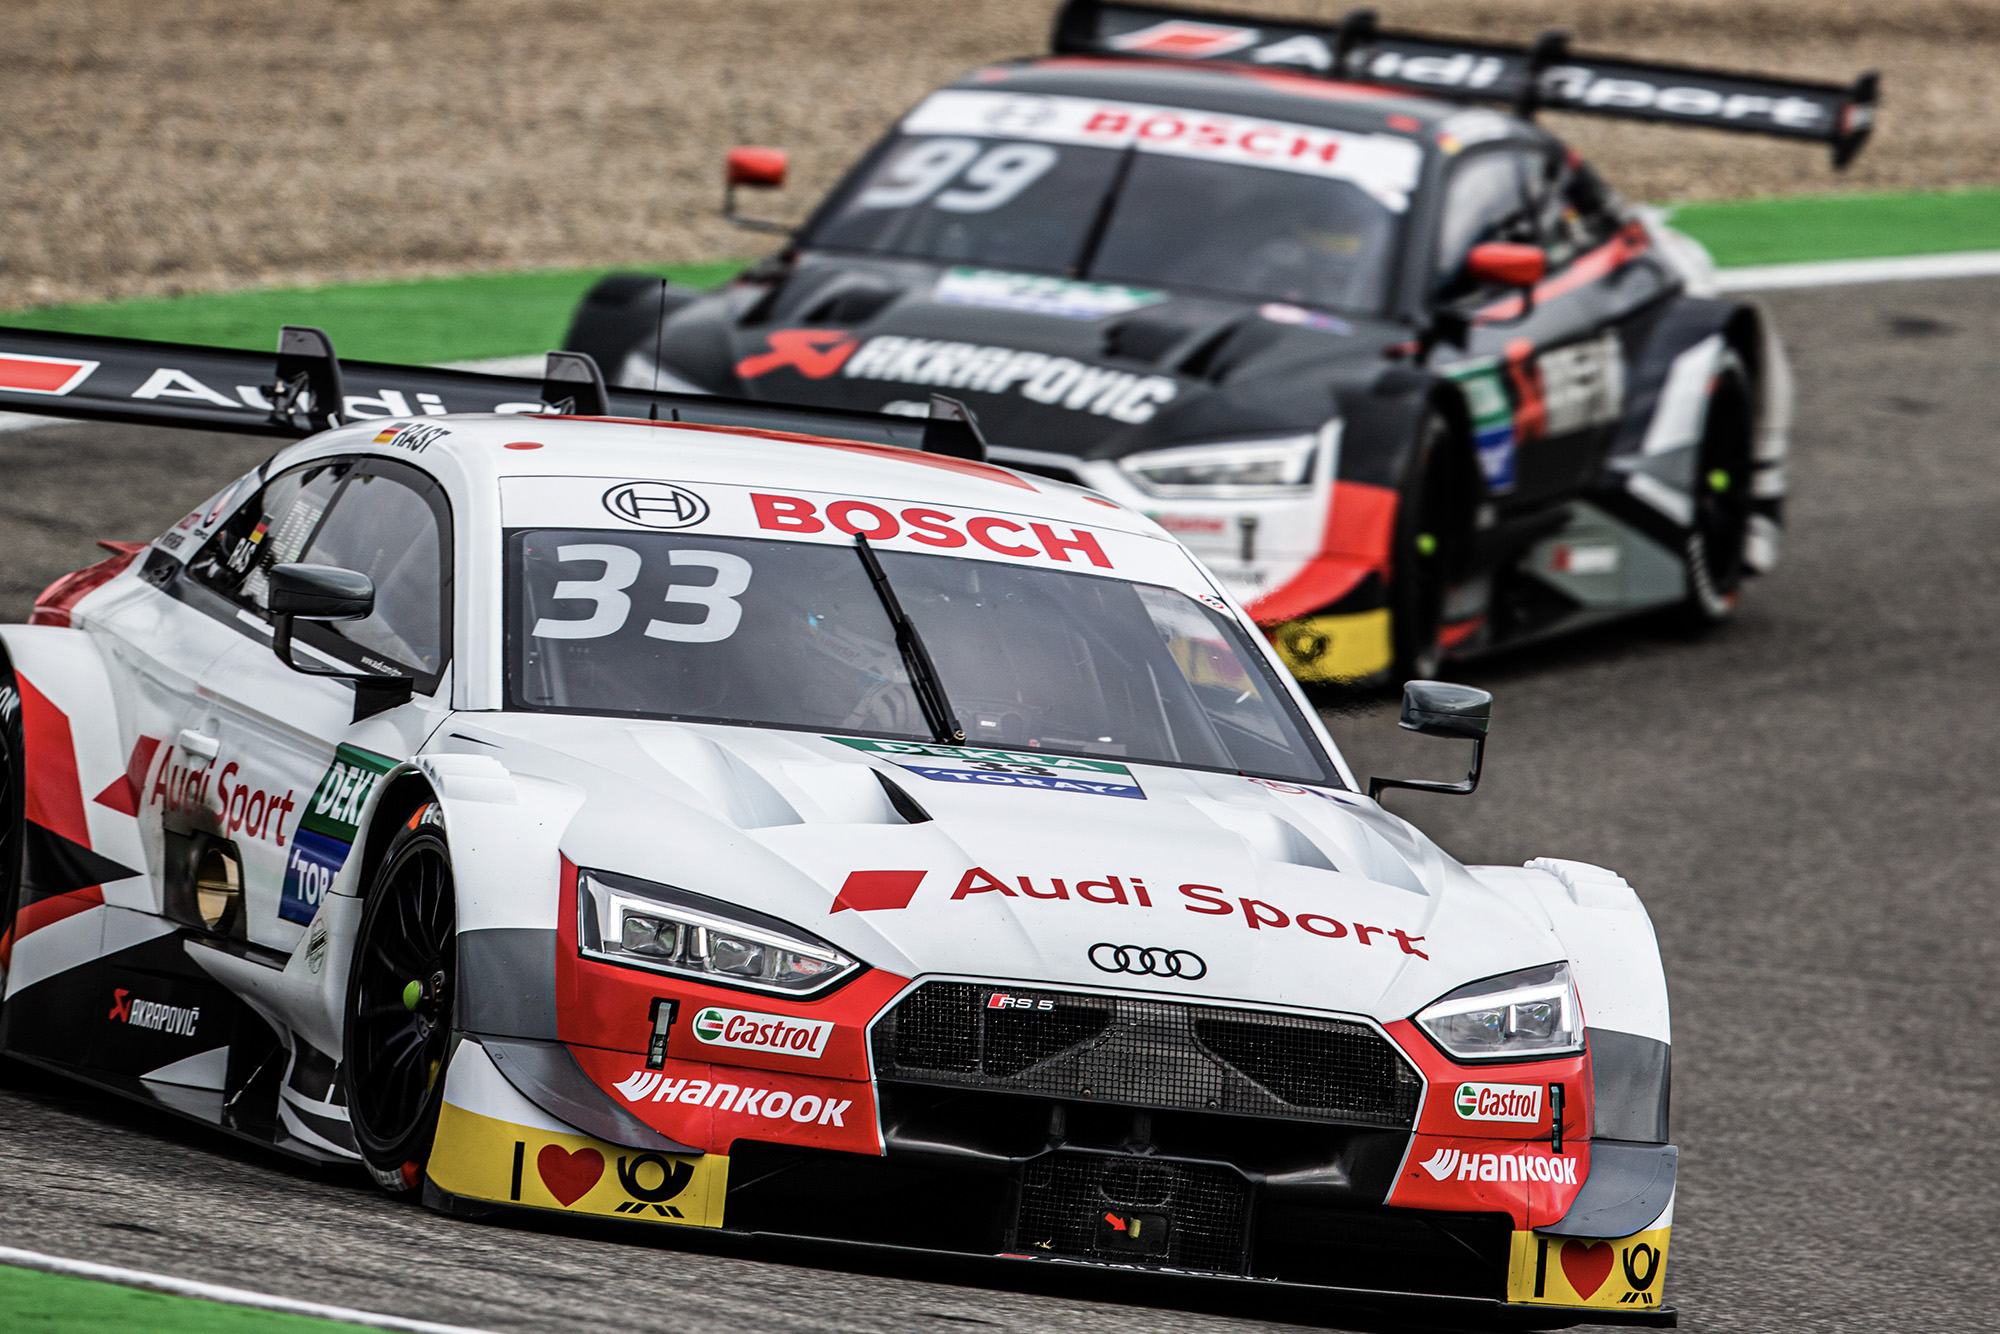 Future Of Dtm In Doubt After Audi Announces Departure From The Series Motor Sport Magazine